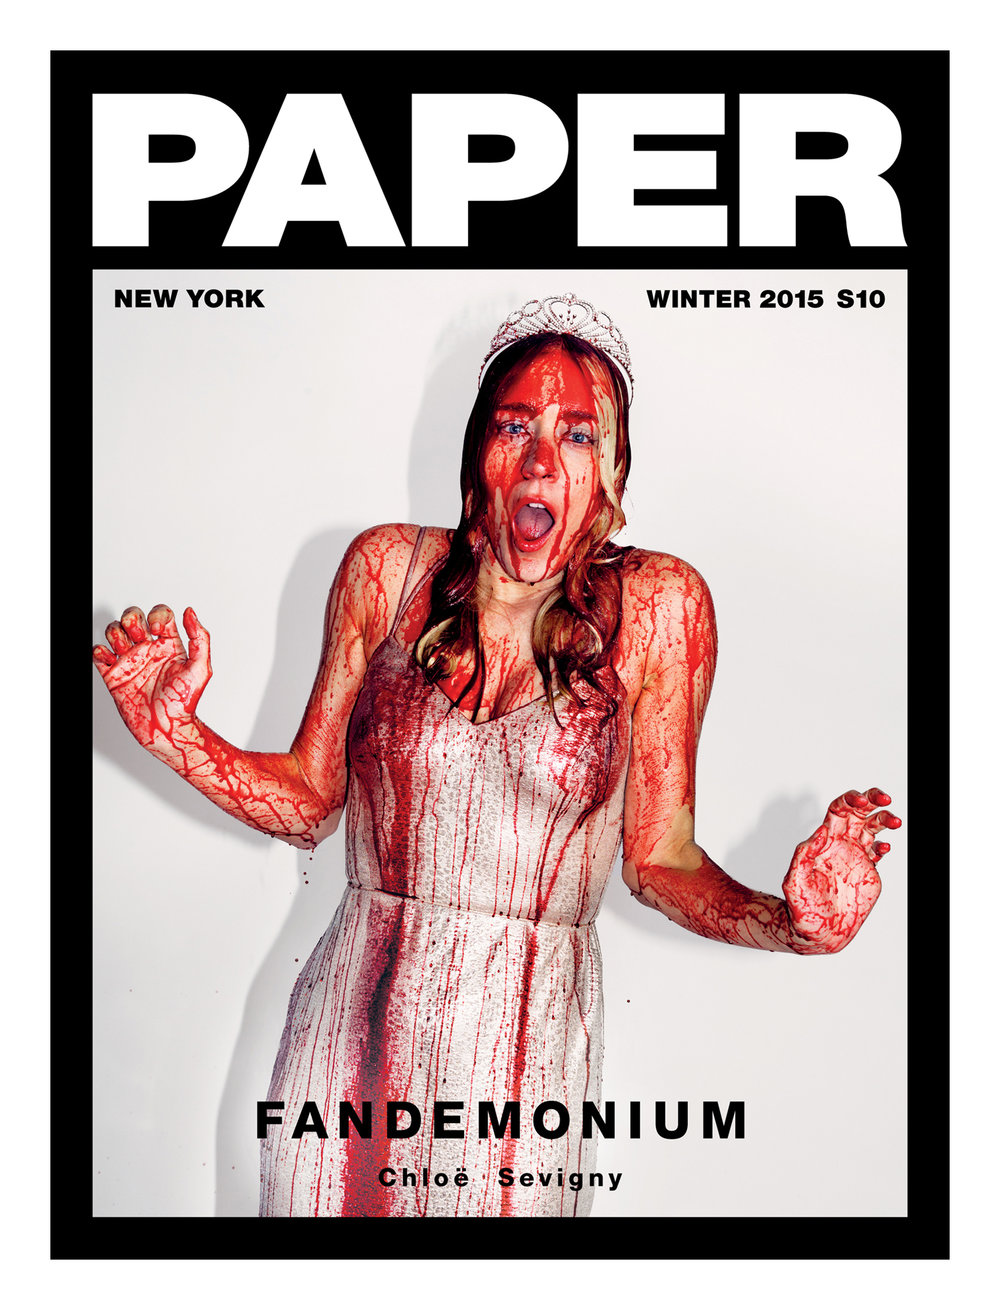 KATE OWEN | CHLOE SEVIGNY | CARRIE | BLOOD | PAPER MAGAZINE | COVER STORY